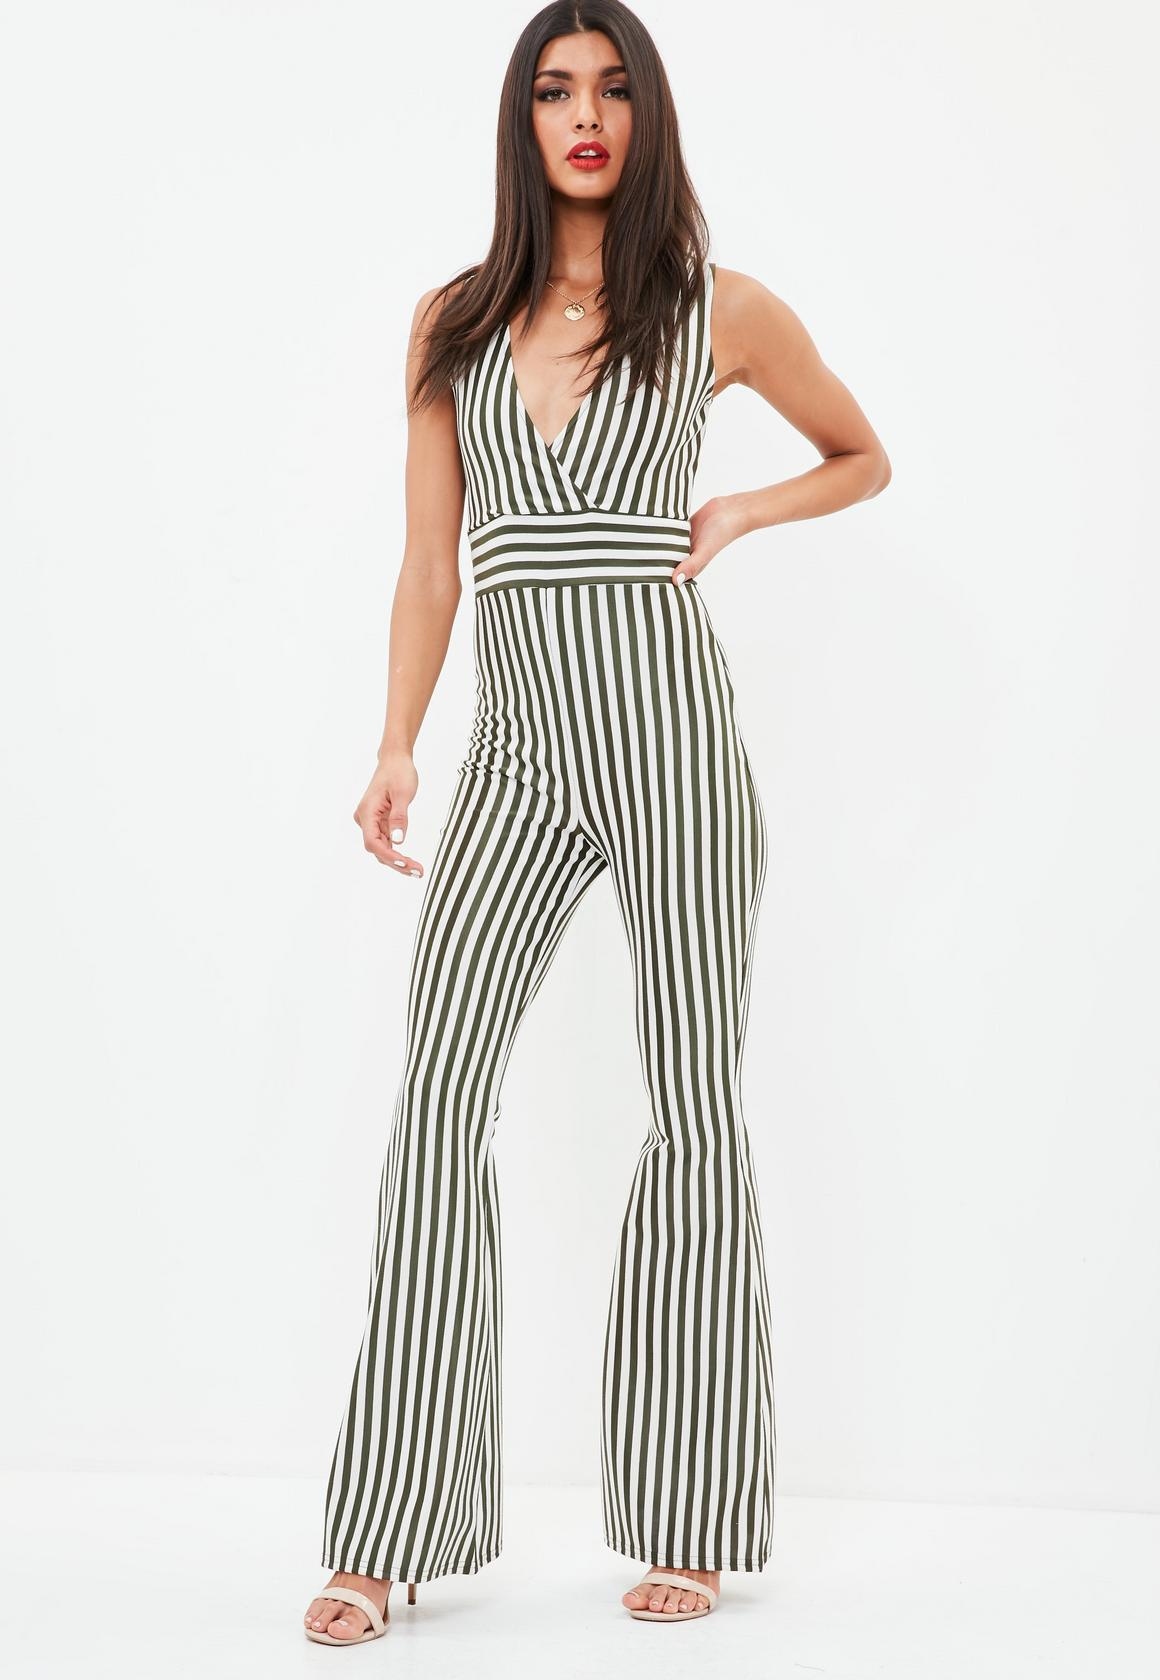 Shop online for Khaki Sleeveless Stripe Kick Flare Jumpsuit